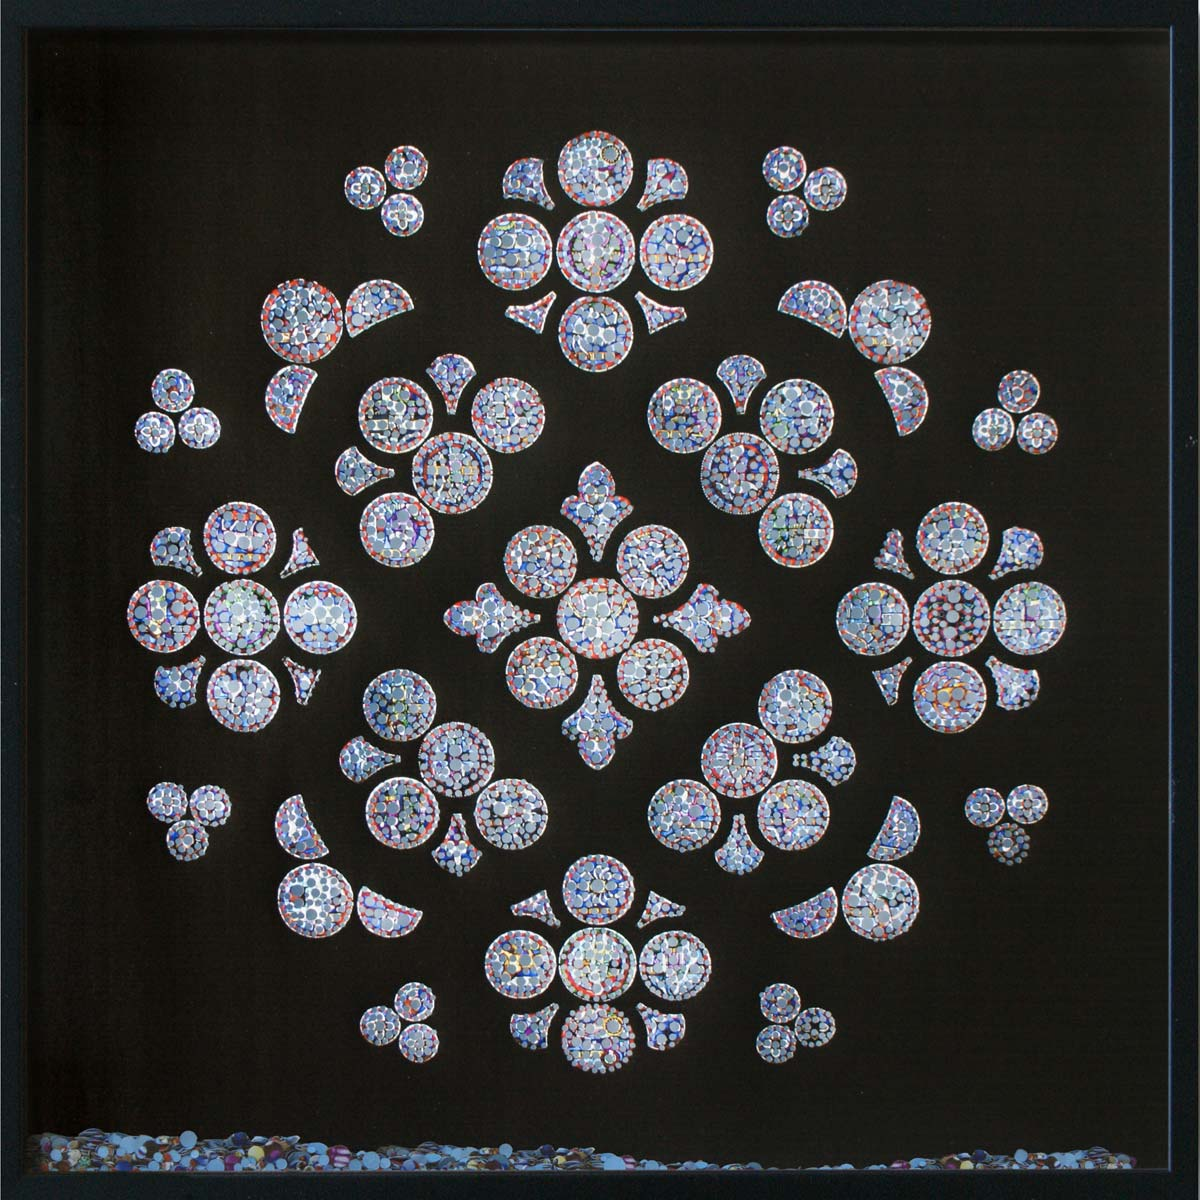 Revelation, Cathédrale Notre-Dame de Lausanne, © 2011, Perforated inkjet print, loose confetti produced by the perforation process, each 50 x 50 cm